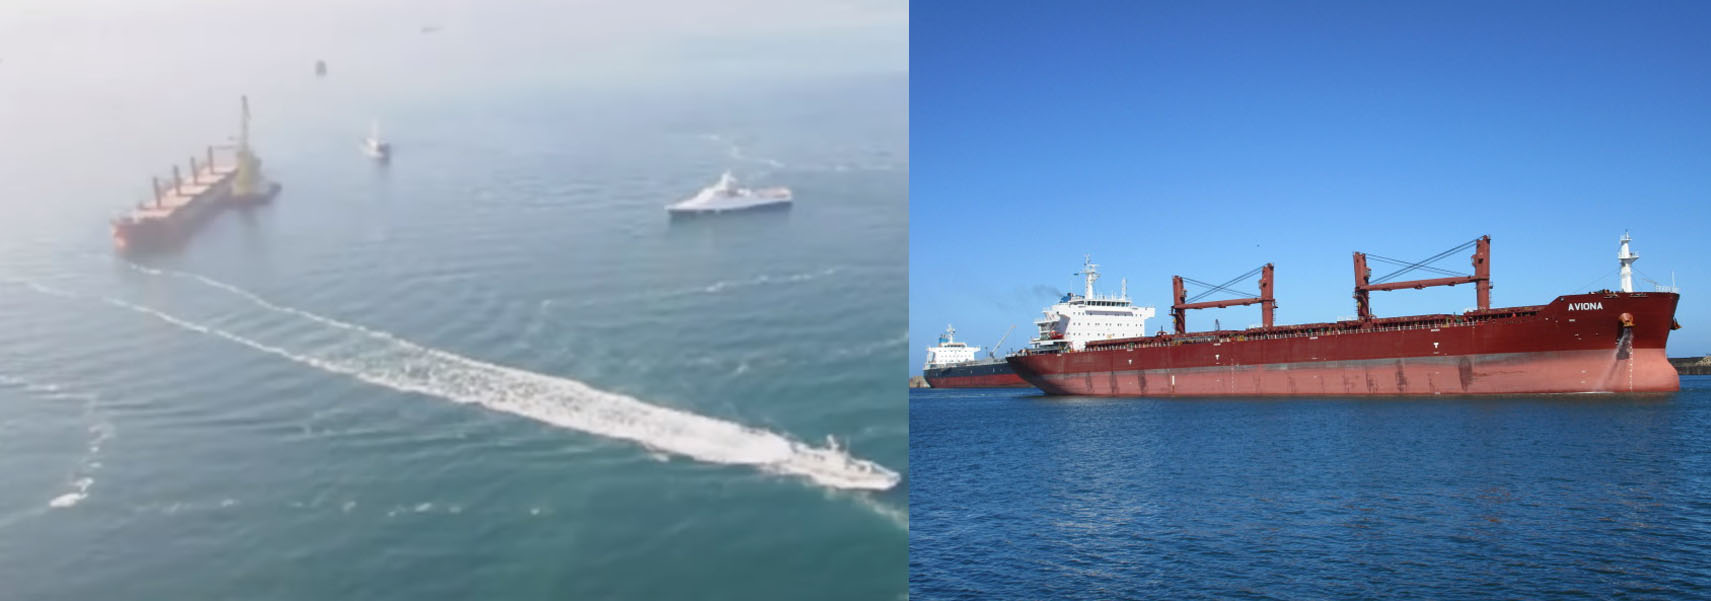 Image 6: Comparison of the large red ship in Zvezda footage and an image of the bulk carrier 'Aviona'